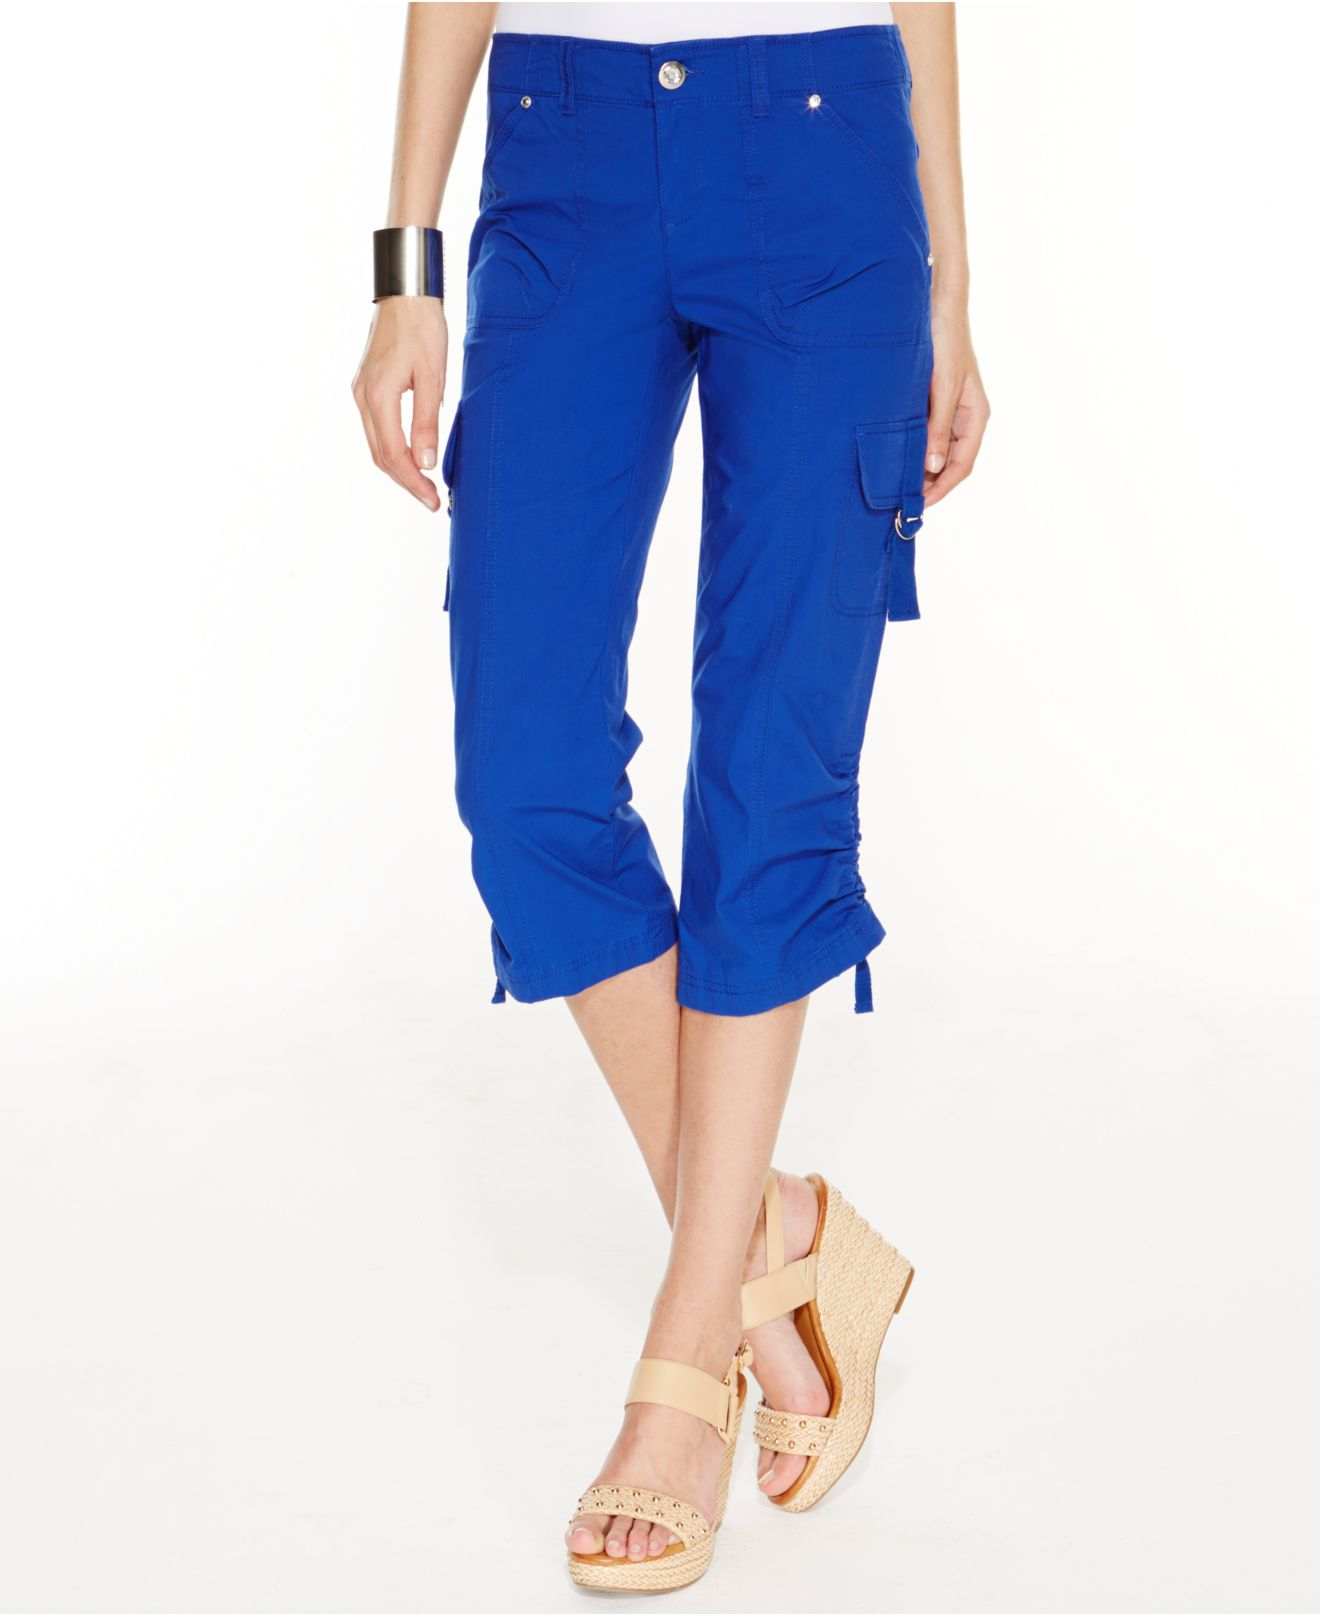 Inc international concepts Curvy-fit Ruched Cargo Capri Pants in ...